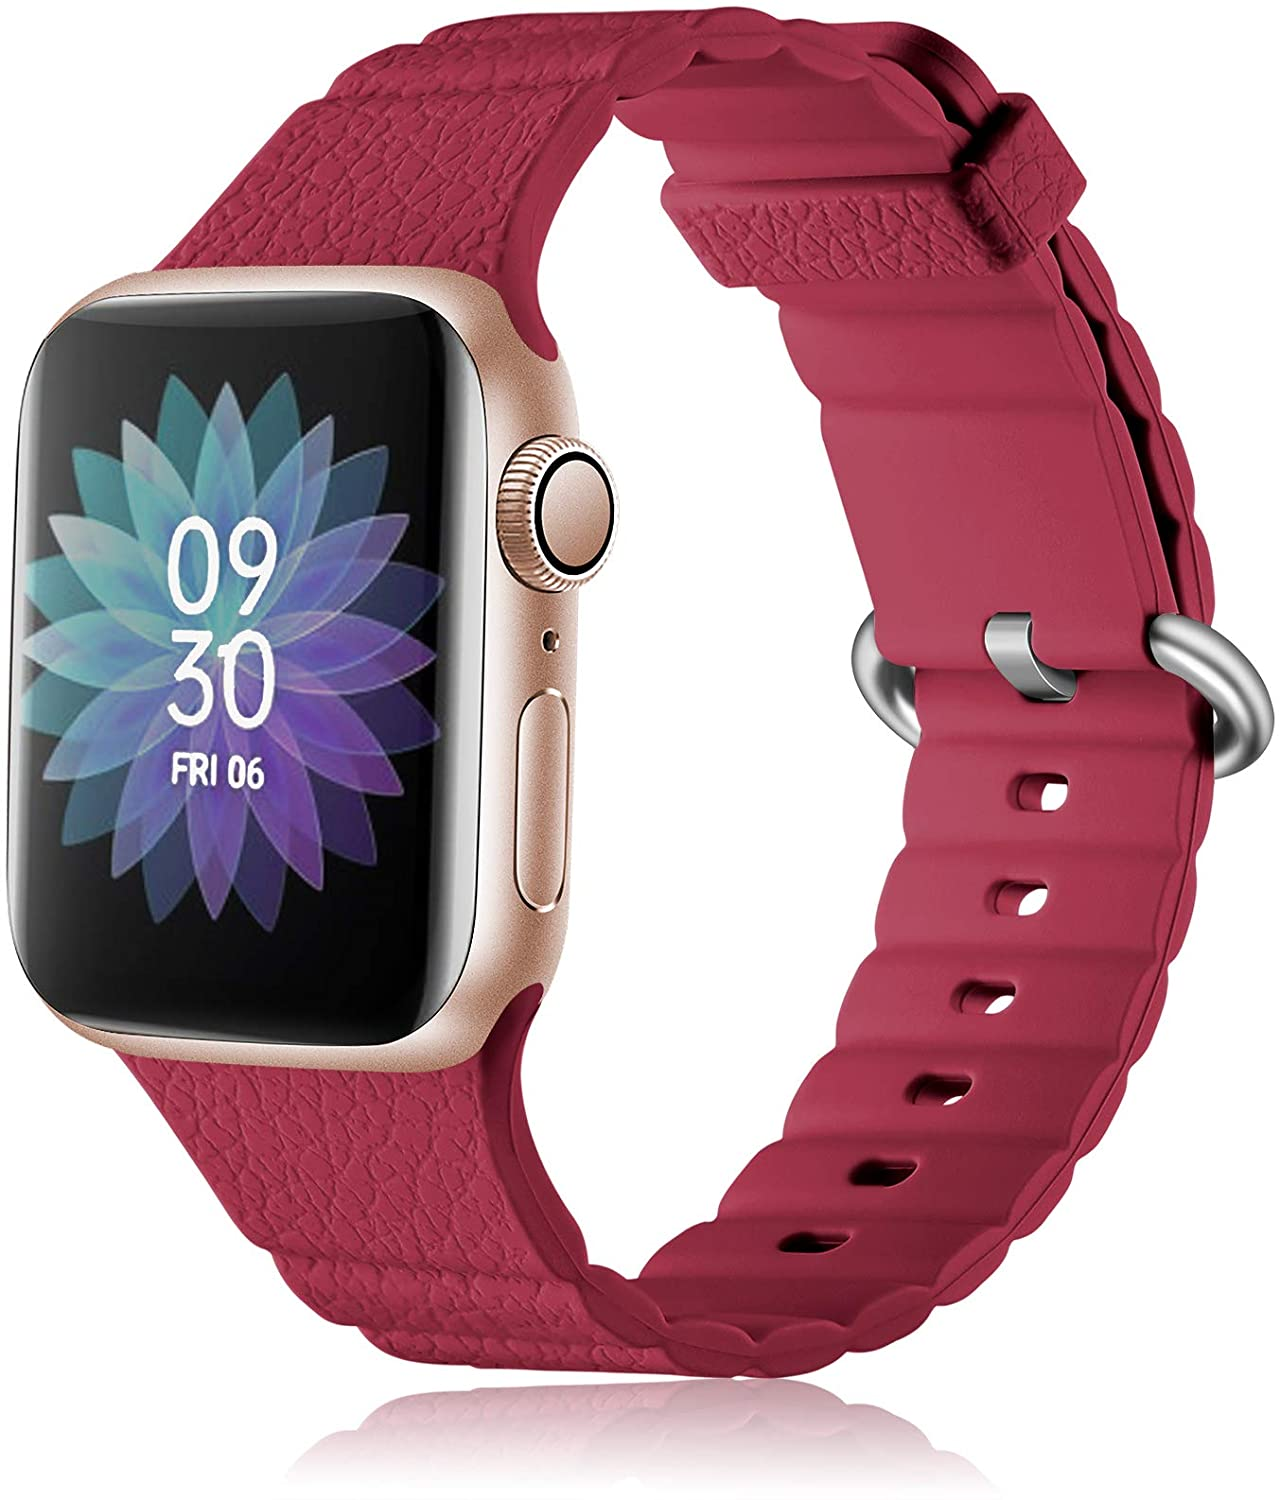 LEOMAON Watch Band Compatible with Apple Watch 40mm 44mm 38mm 42mm, Series 6 SE 5 4 3 2 1, Soft Silicone Replacement Strap for iWatch Series 6 SE 5 4 3 2 1 Unique Wave Pattern, Red